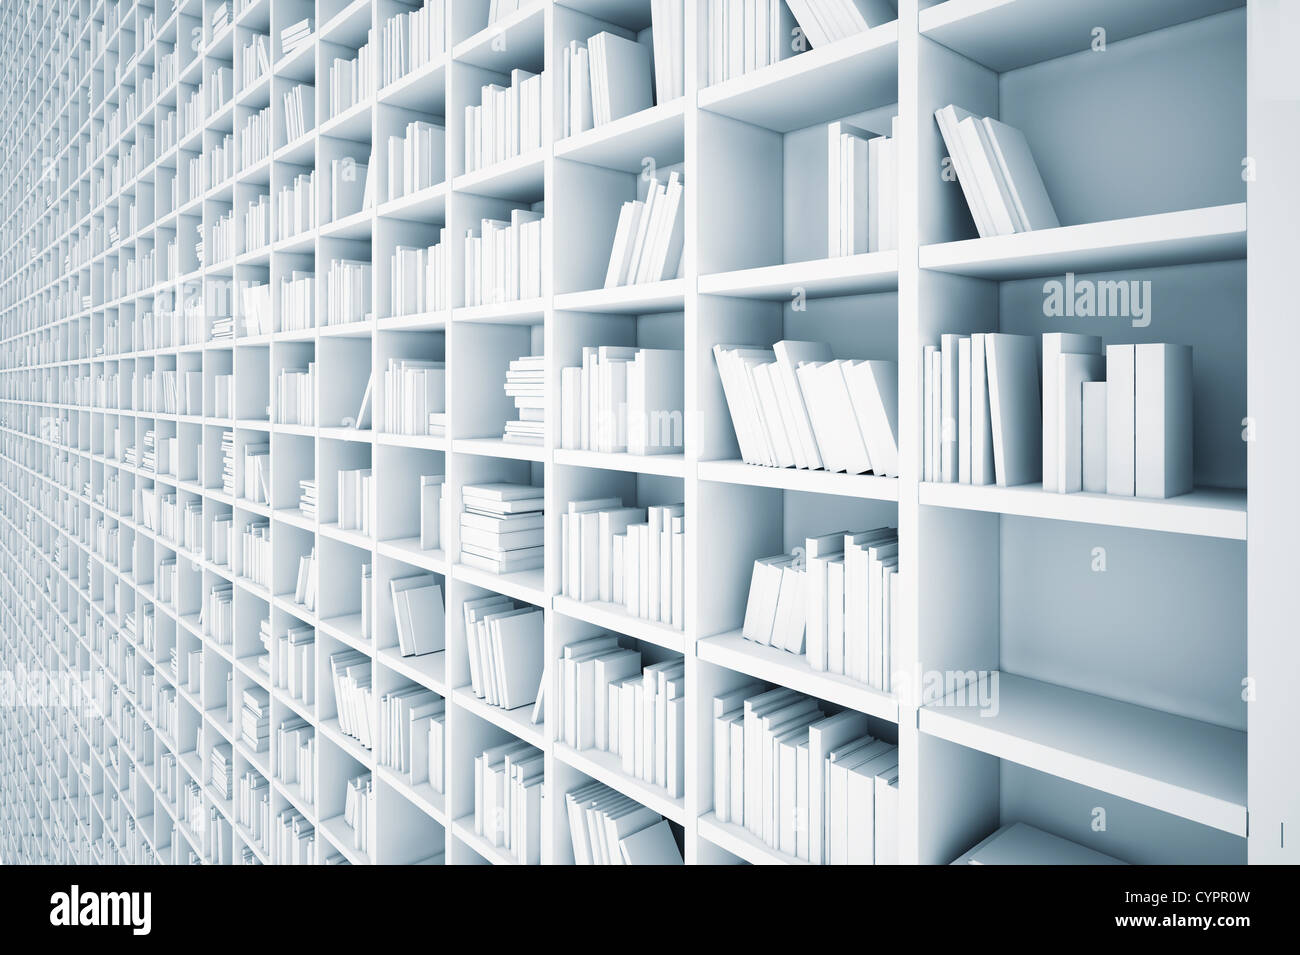 endless white shelves (illustrated concept) - Stock Image